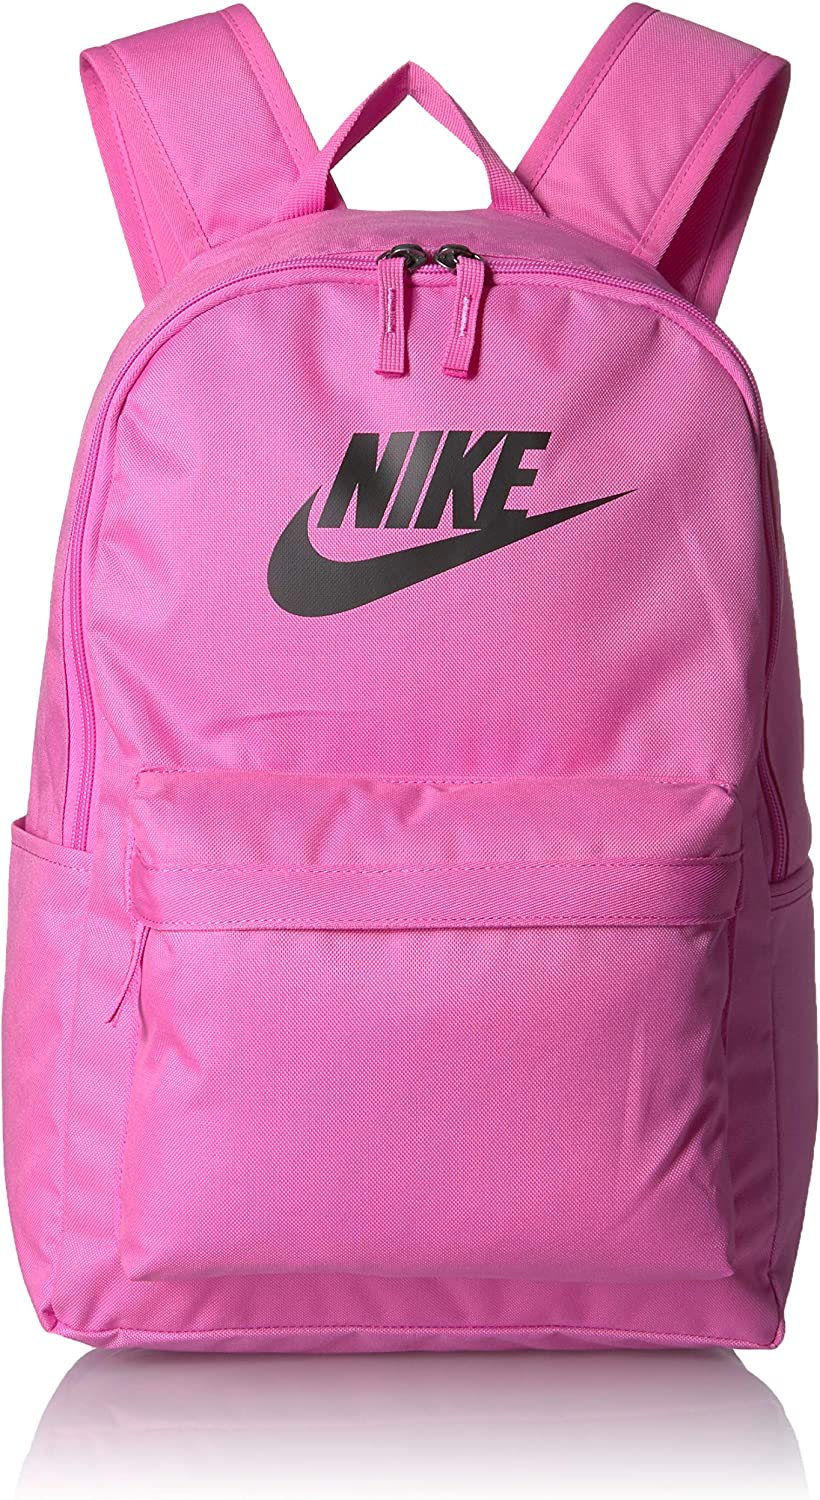 Nike unisex-adult Nike Heritage Backpack - 2.0